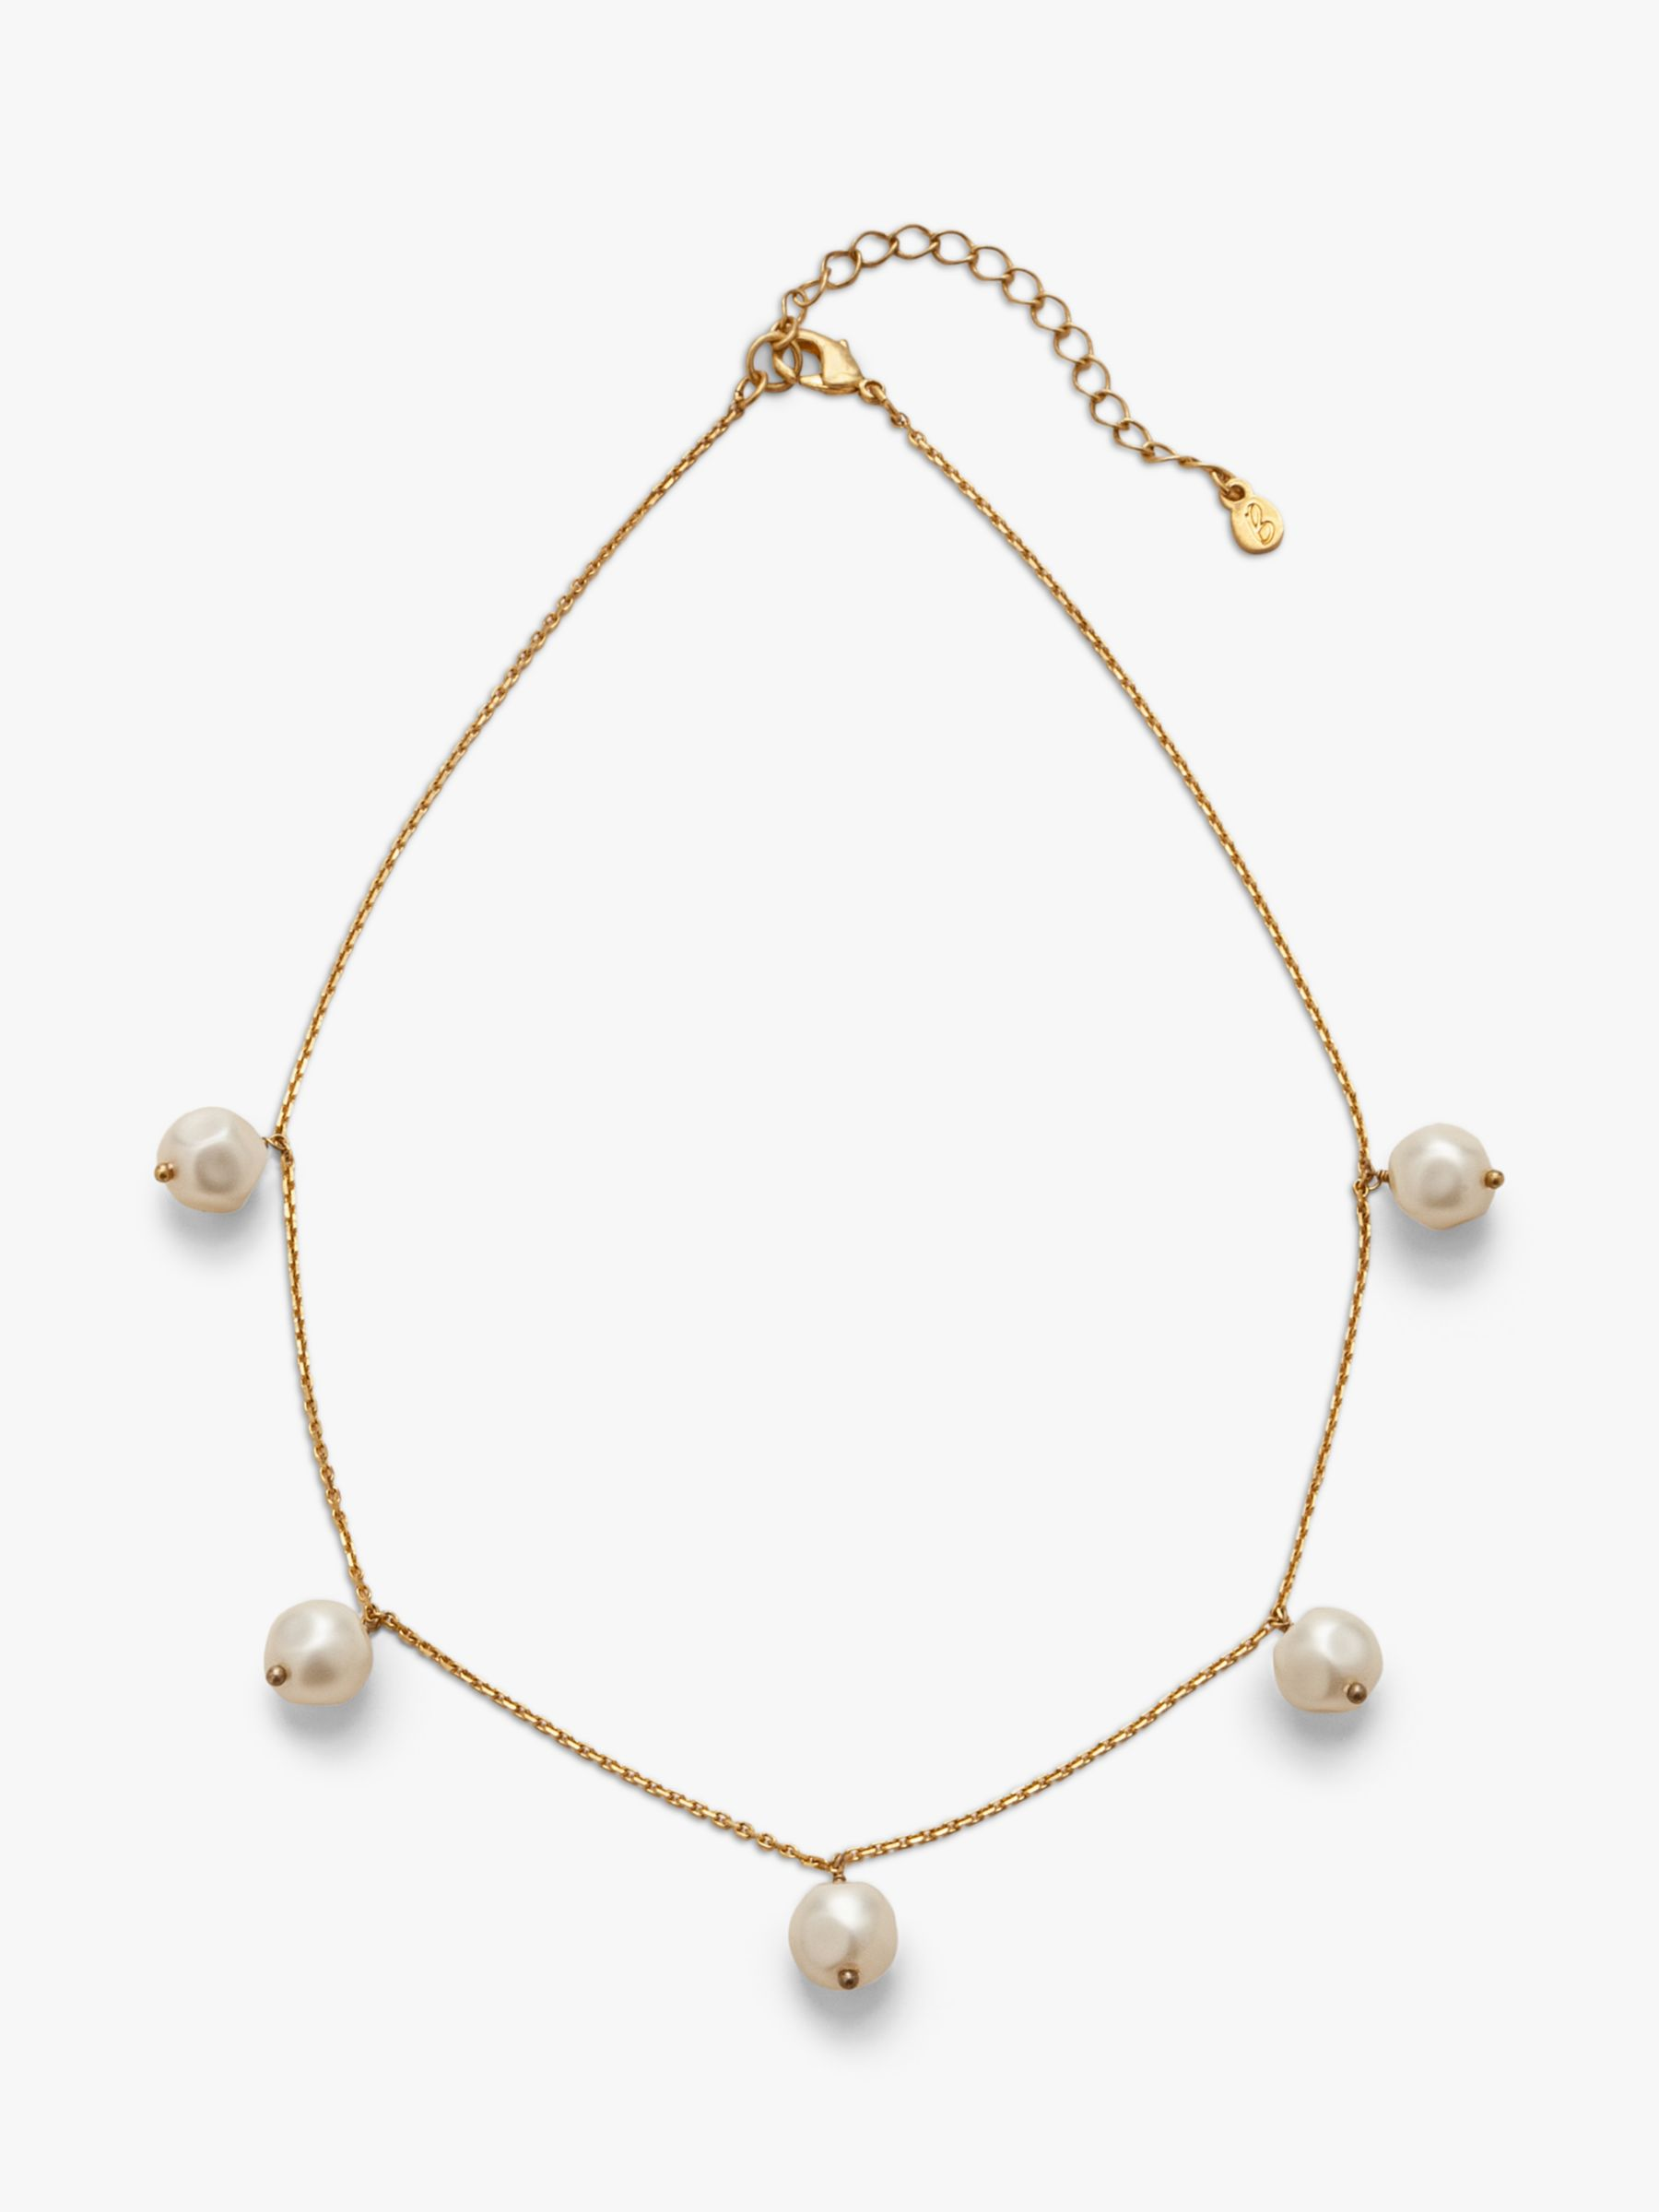 Boden Boden Faux Pearl Necklace, Gold